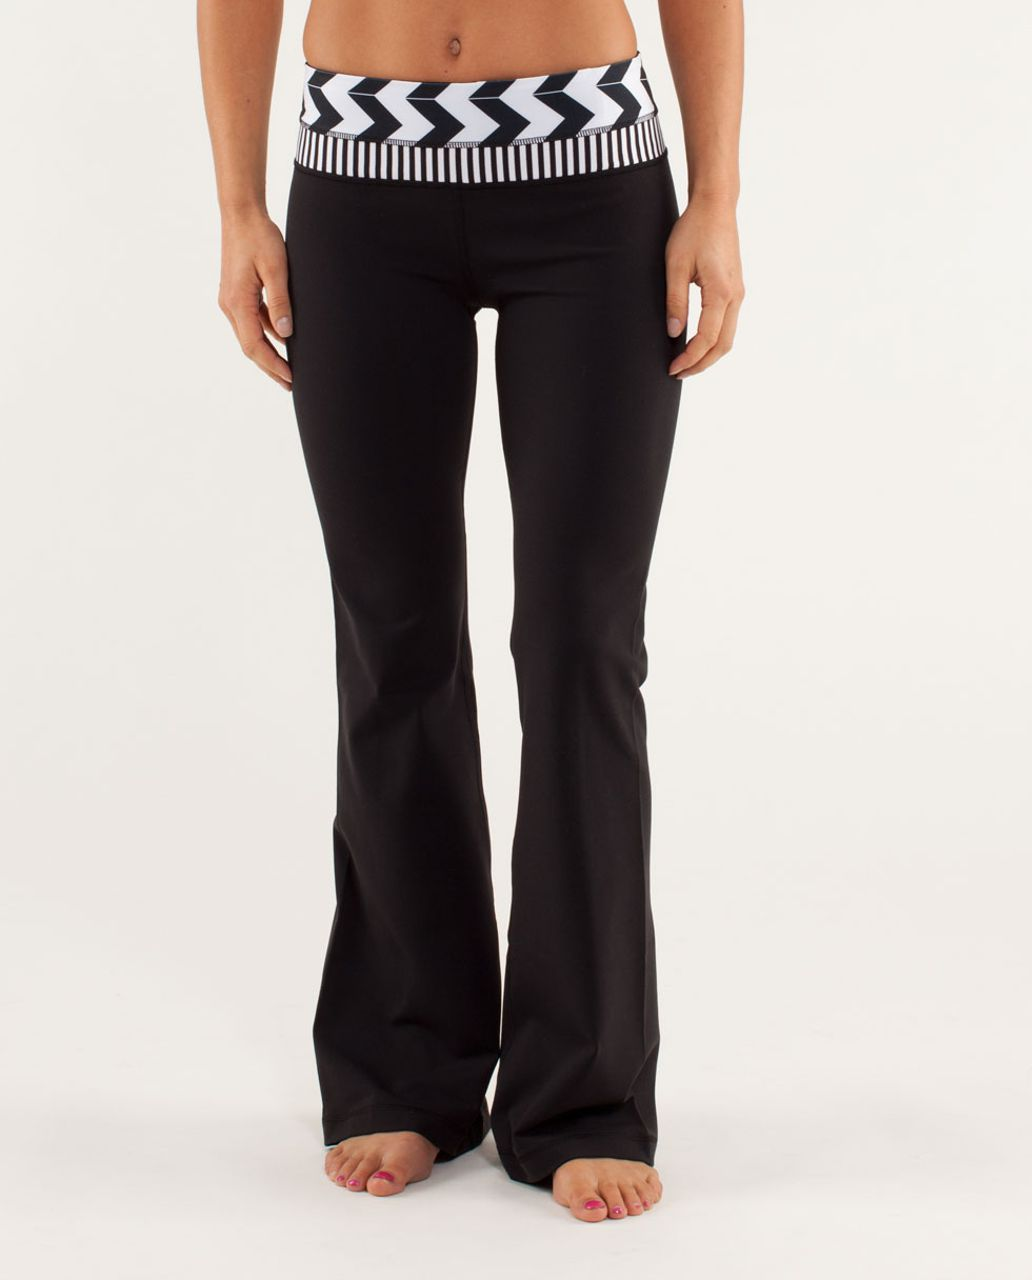 Lululemon Groove Pant *Slim (Tall) - Black / Arrow Chevron White Black / Classic Stripe Black And White